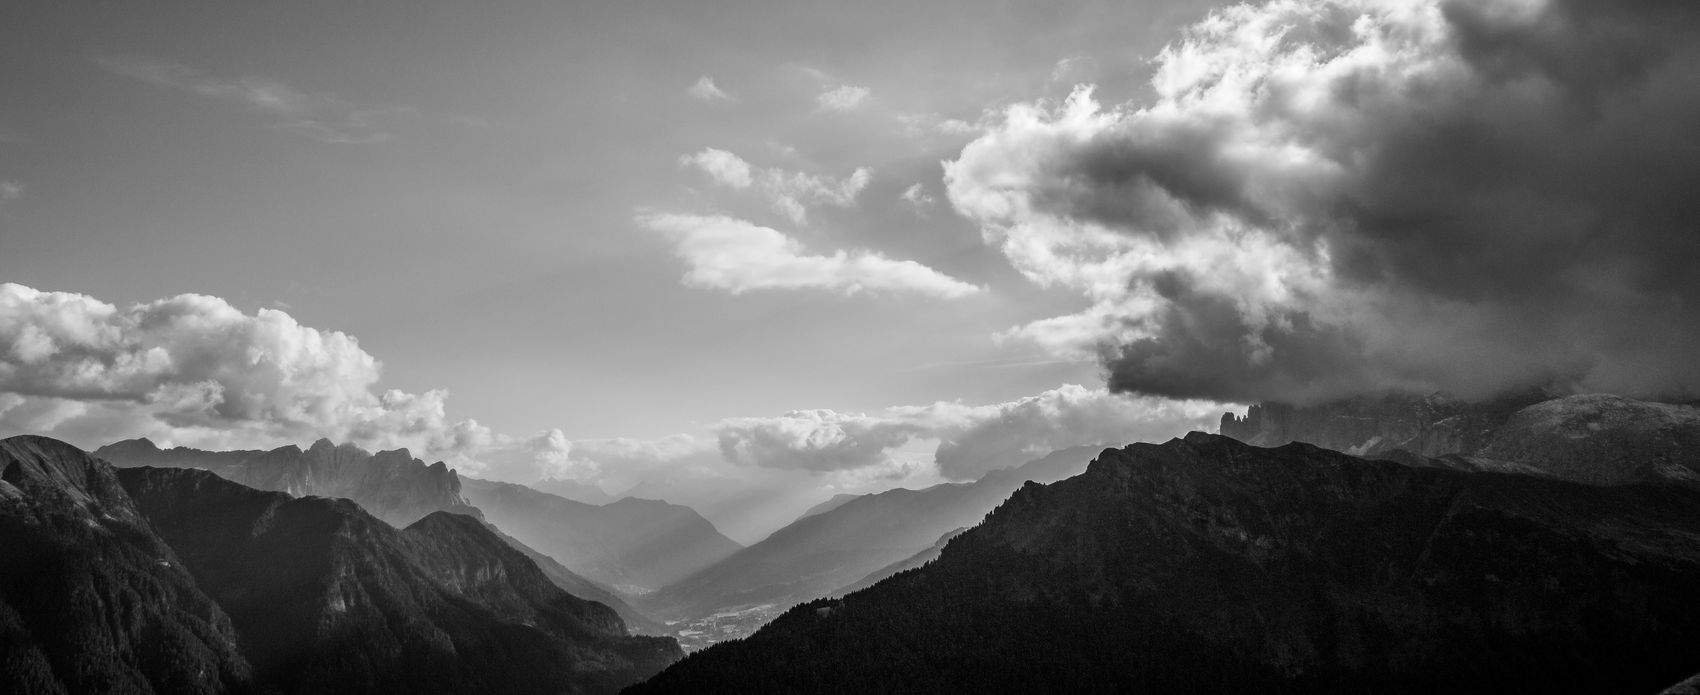 Cloud - Sky Nature Sky Outdoors Hiking Blackandwhite Black & White Black And White Black&white Dolomites, Italy Dolomites Pizboe First Eyeem Photo